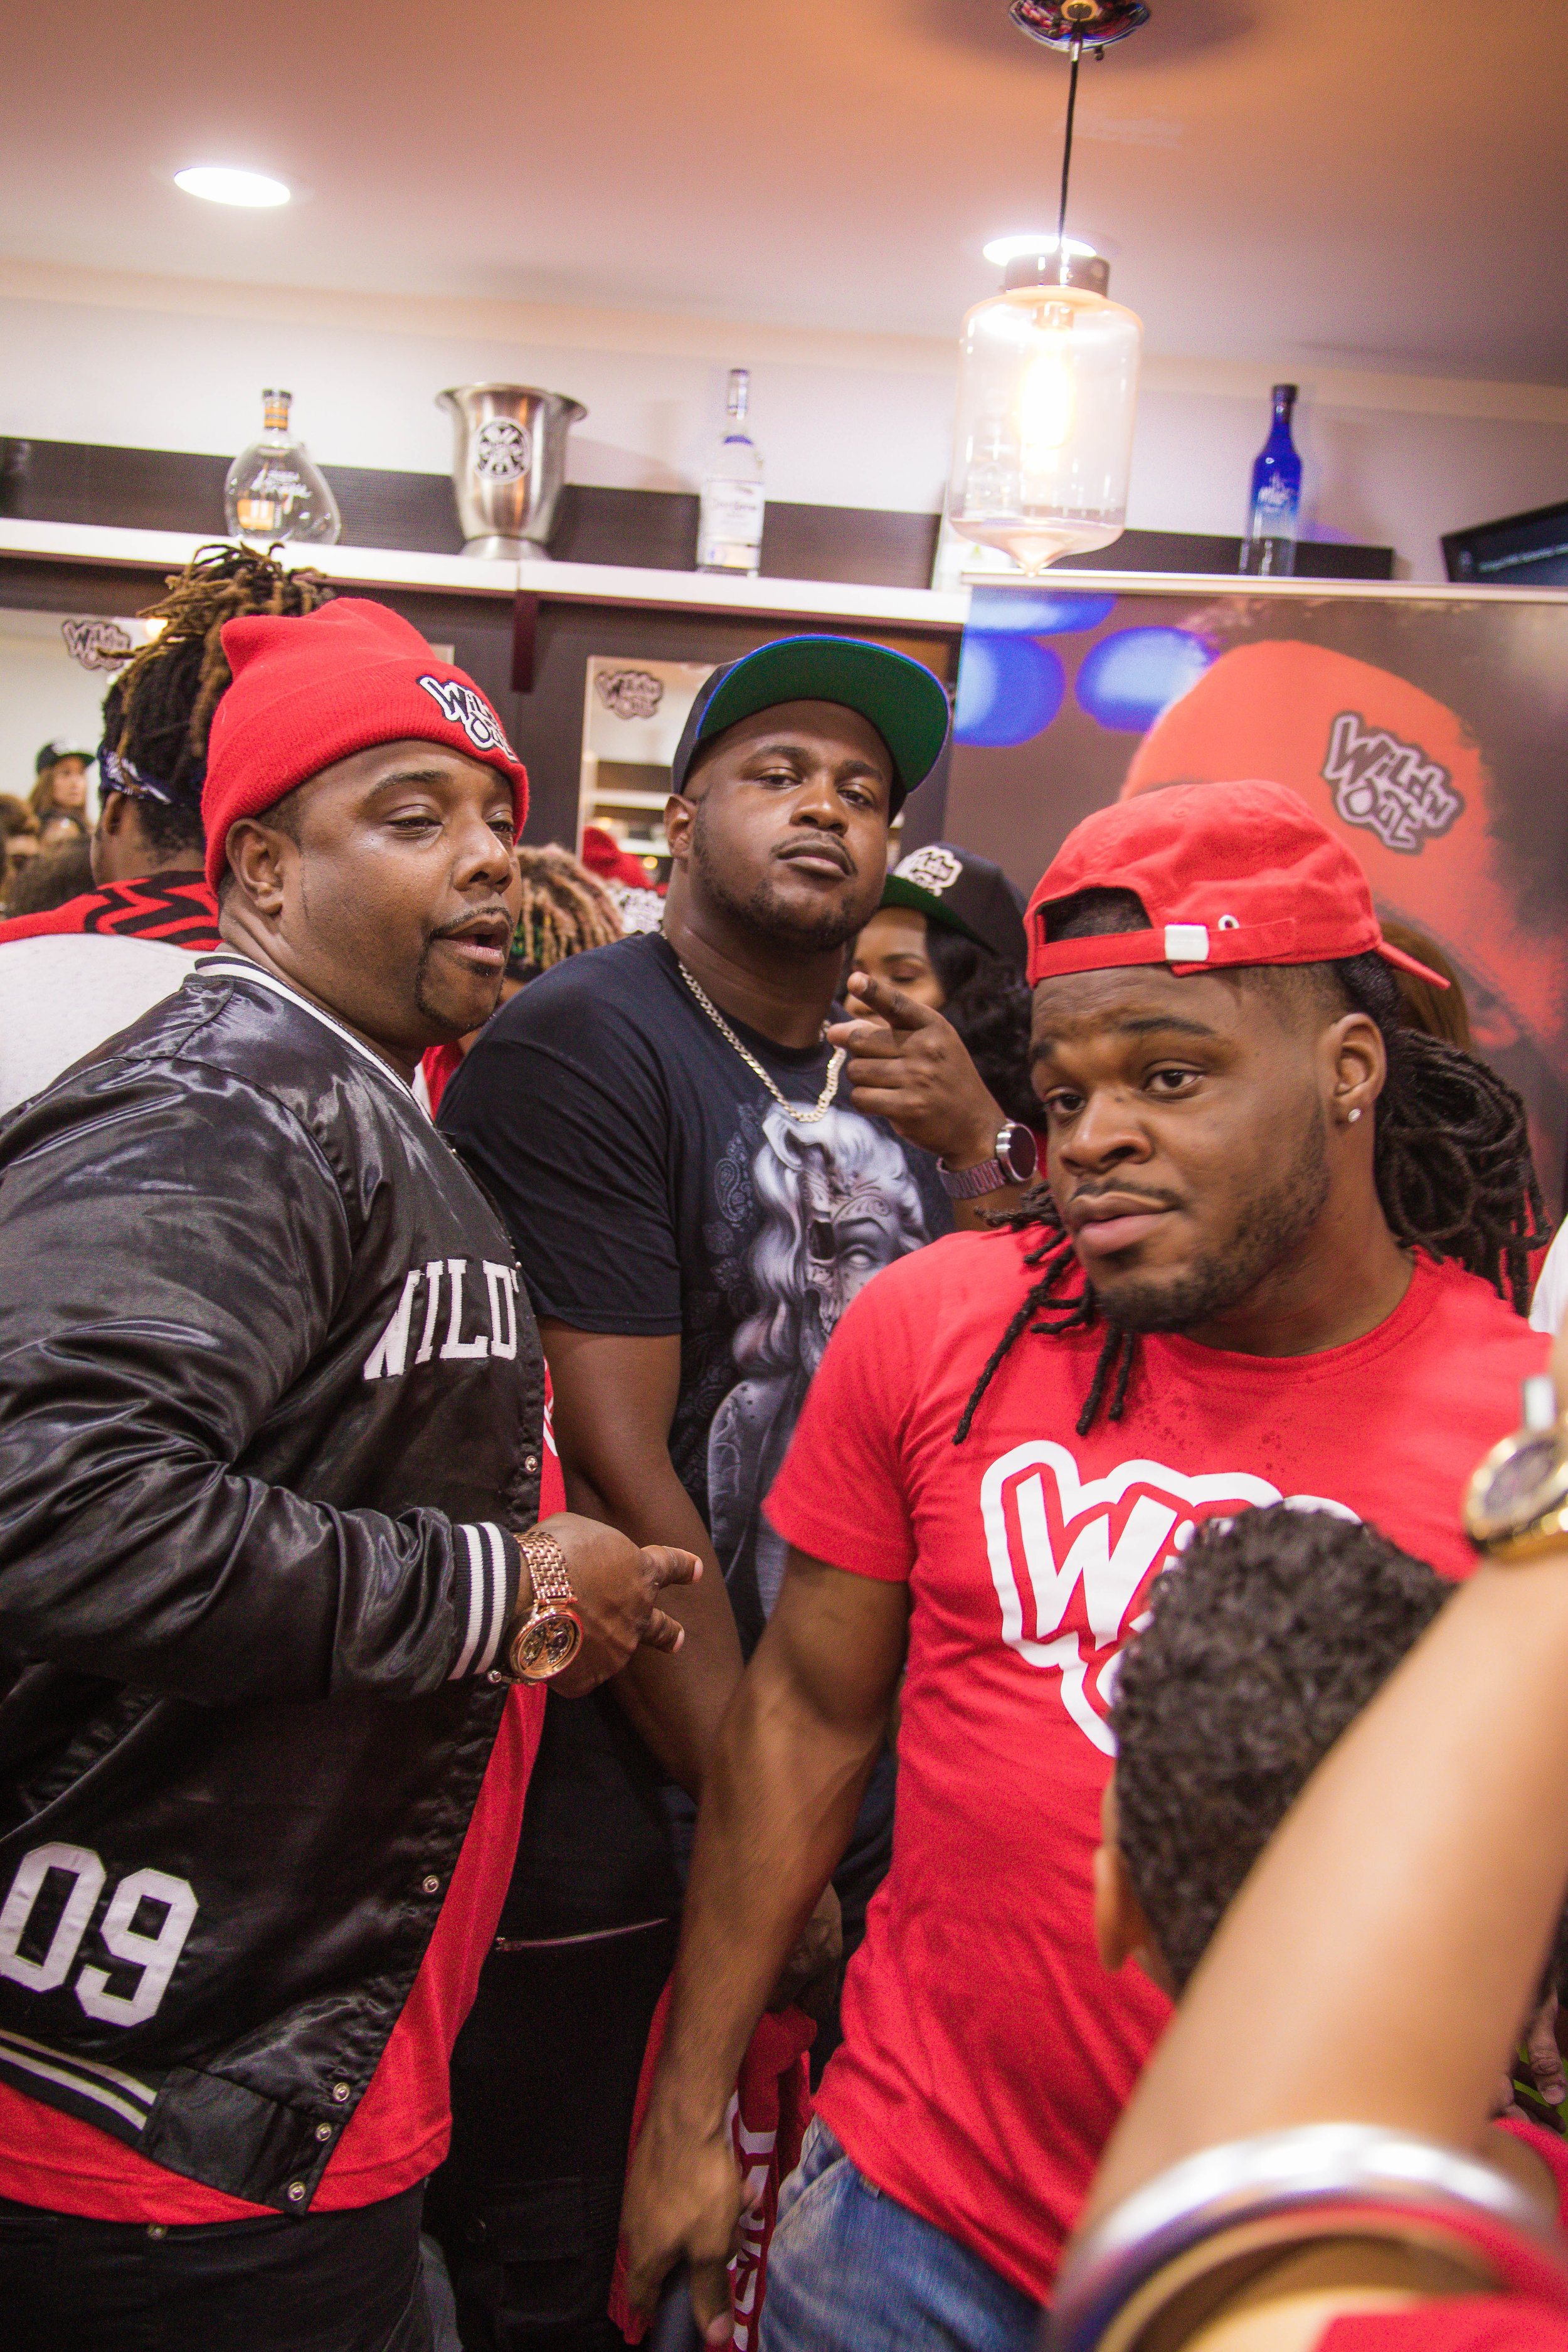 Wildn out-11.jpg